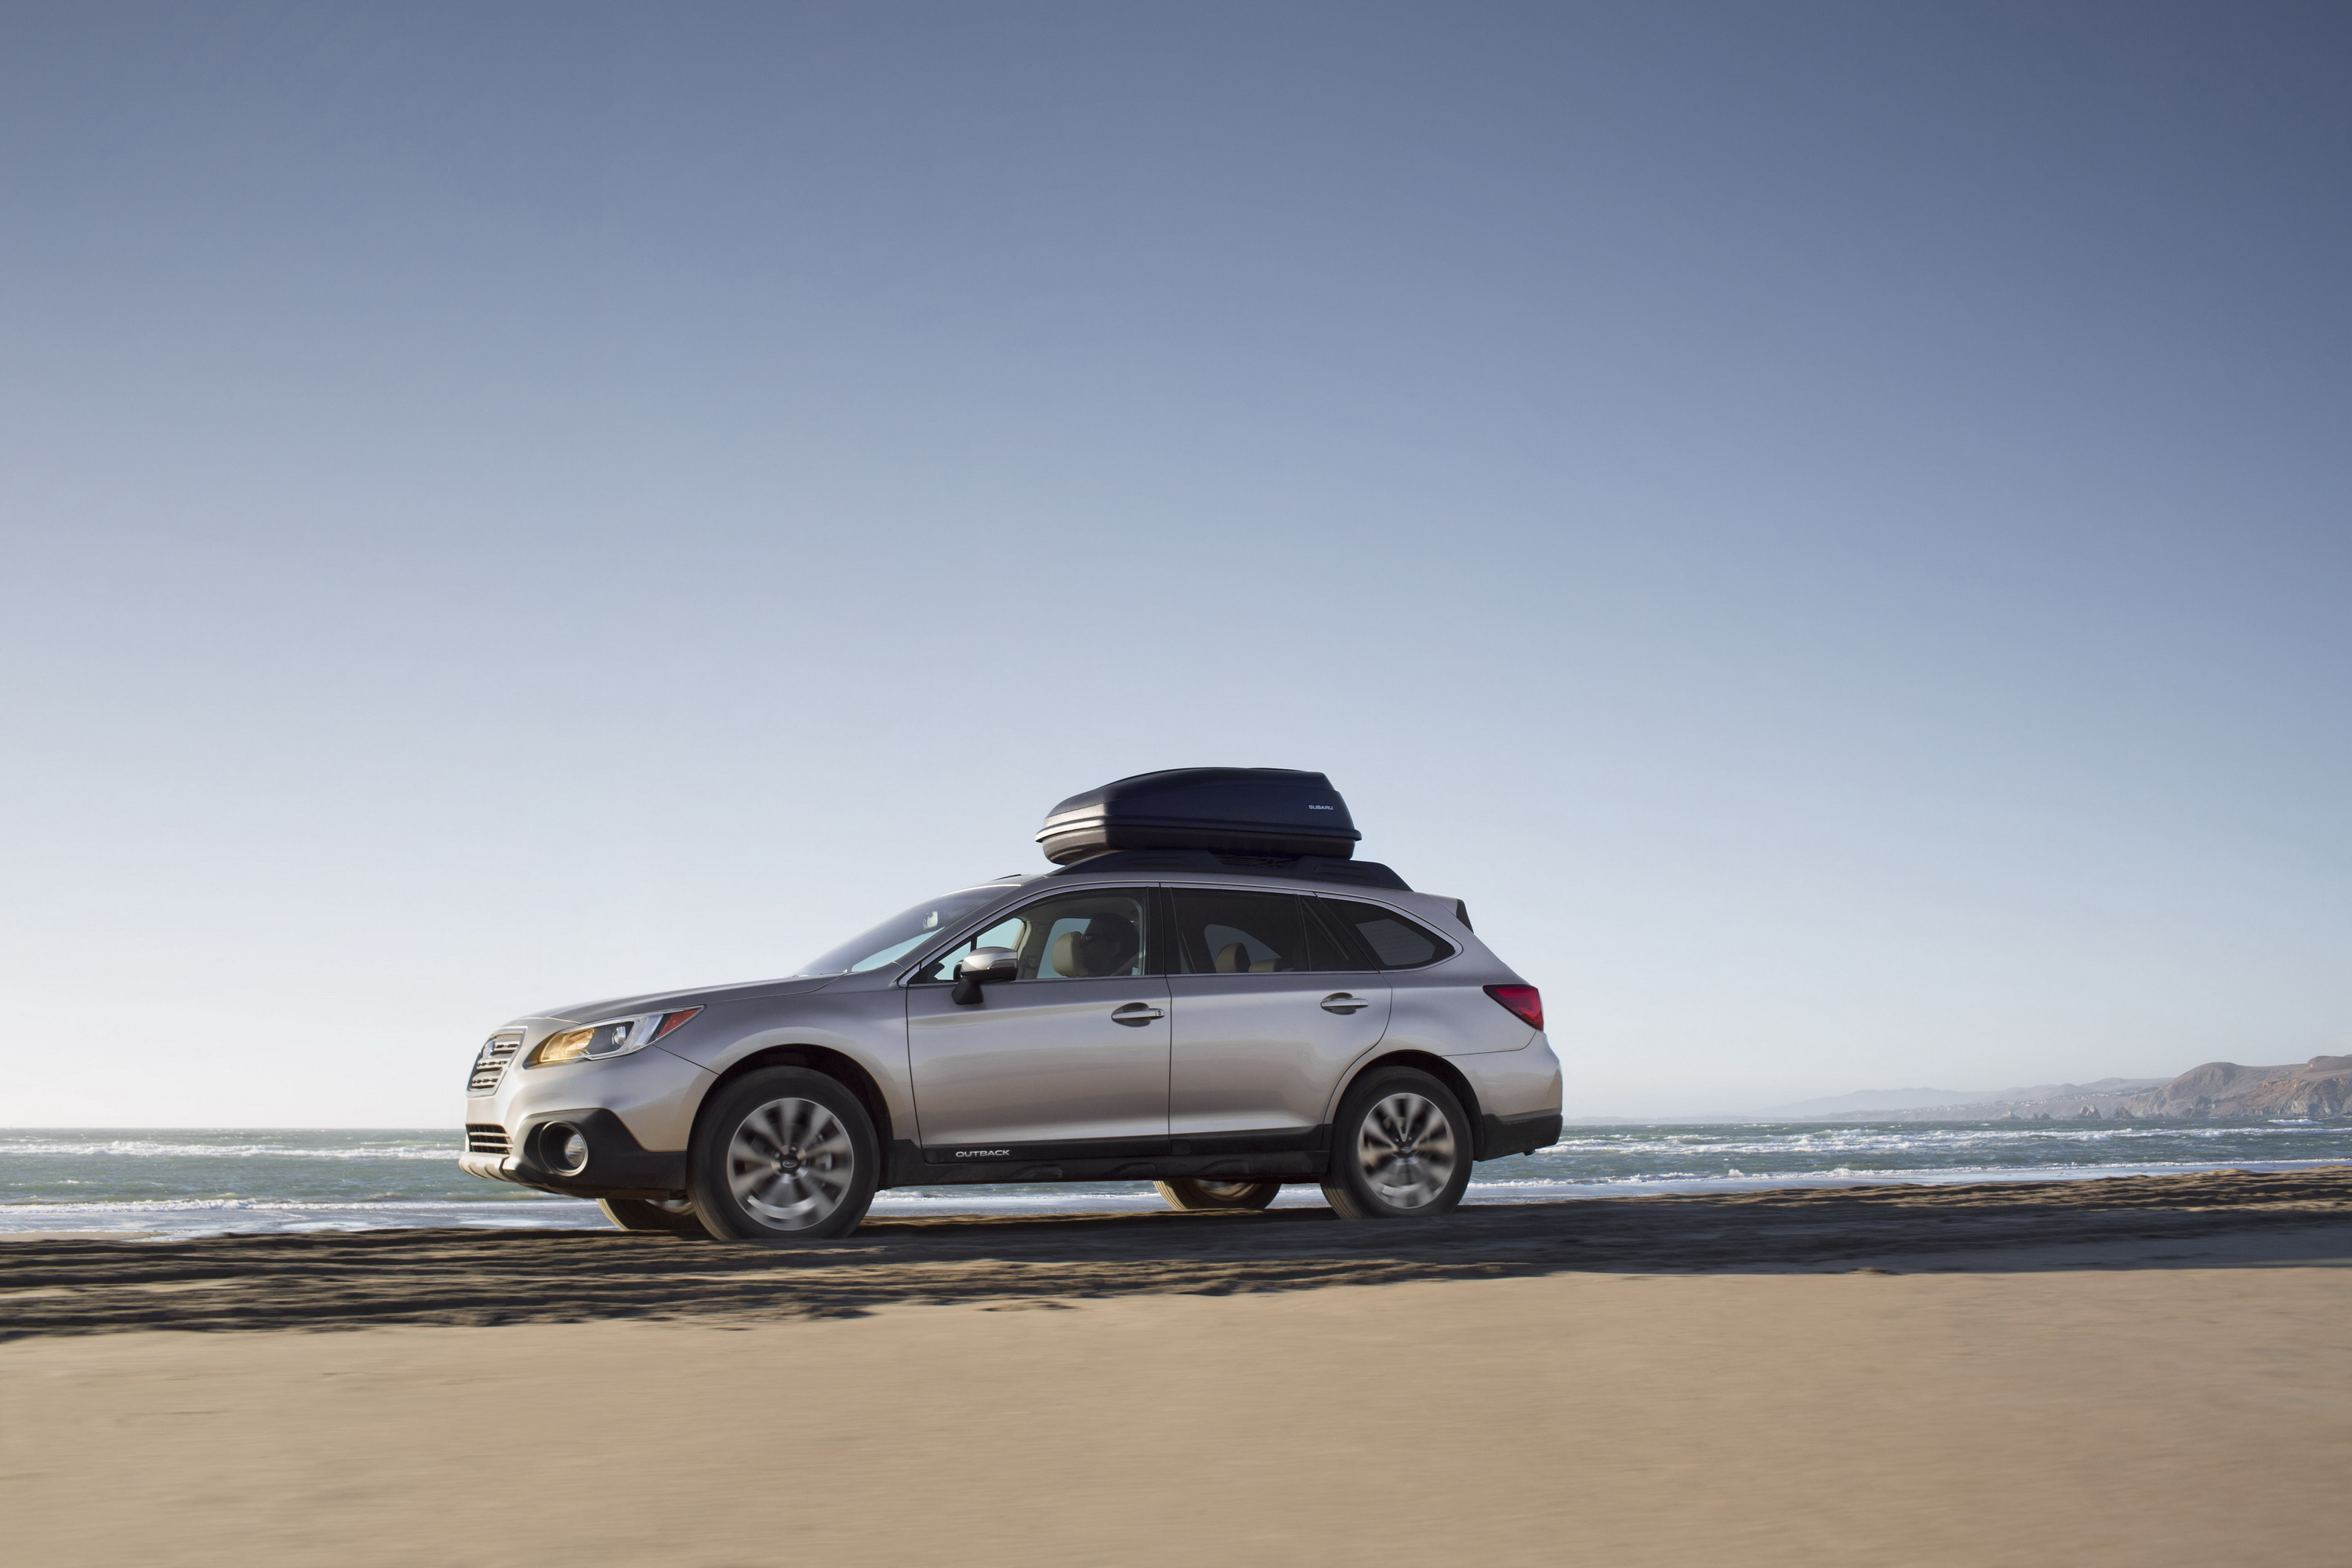 2015 - 2017 subaru outback review - top speed